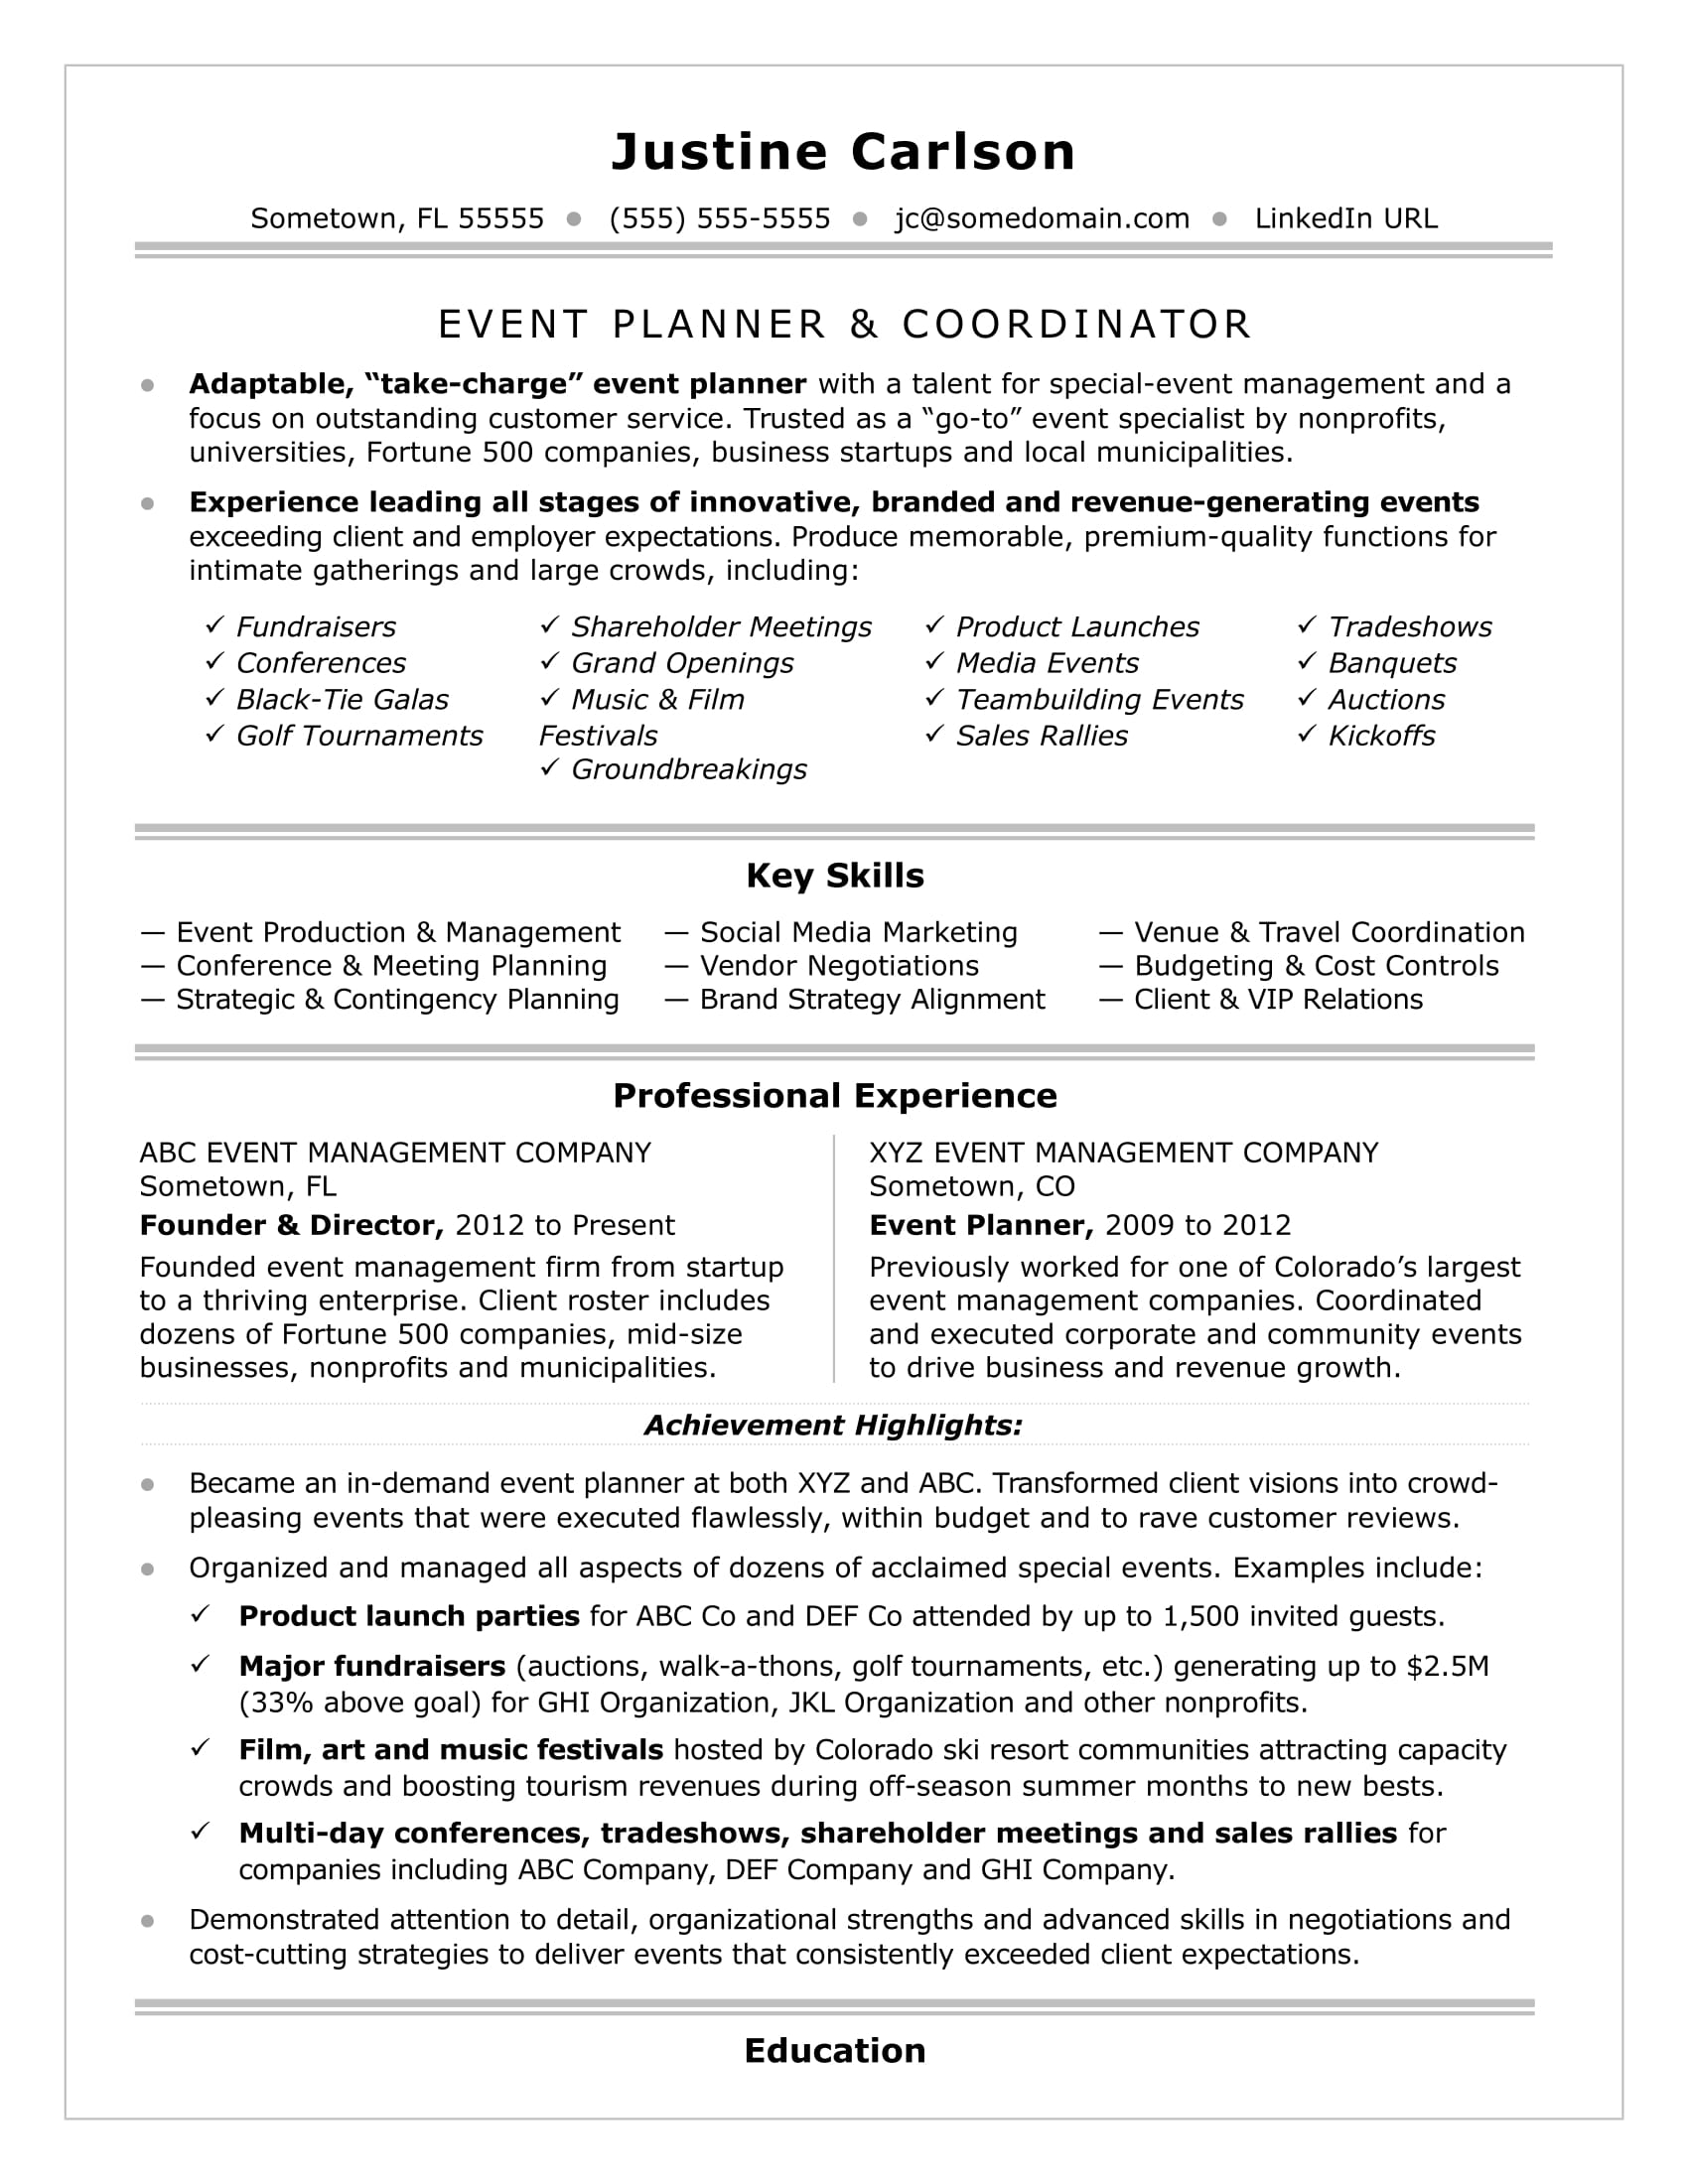 event coordinator resume sample - Resumes